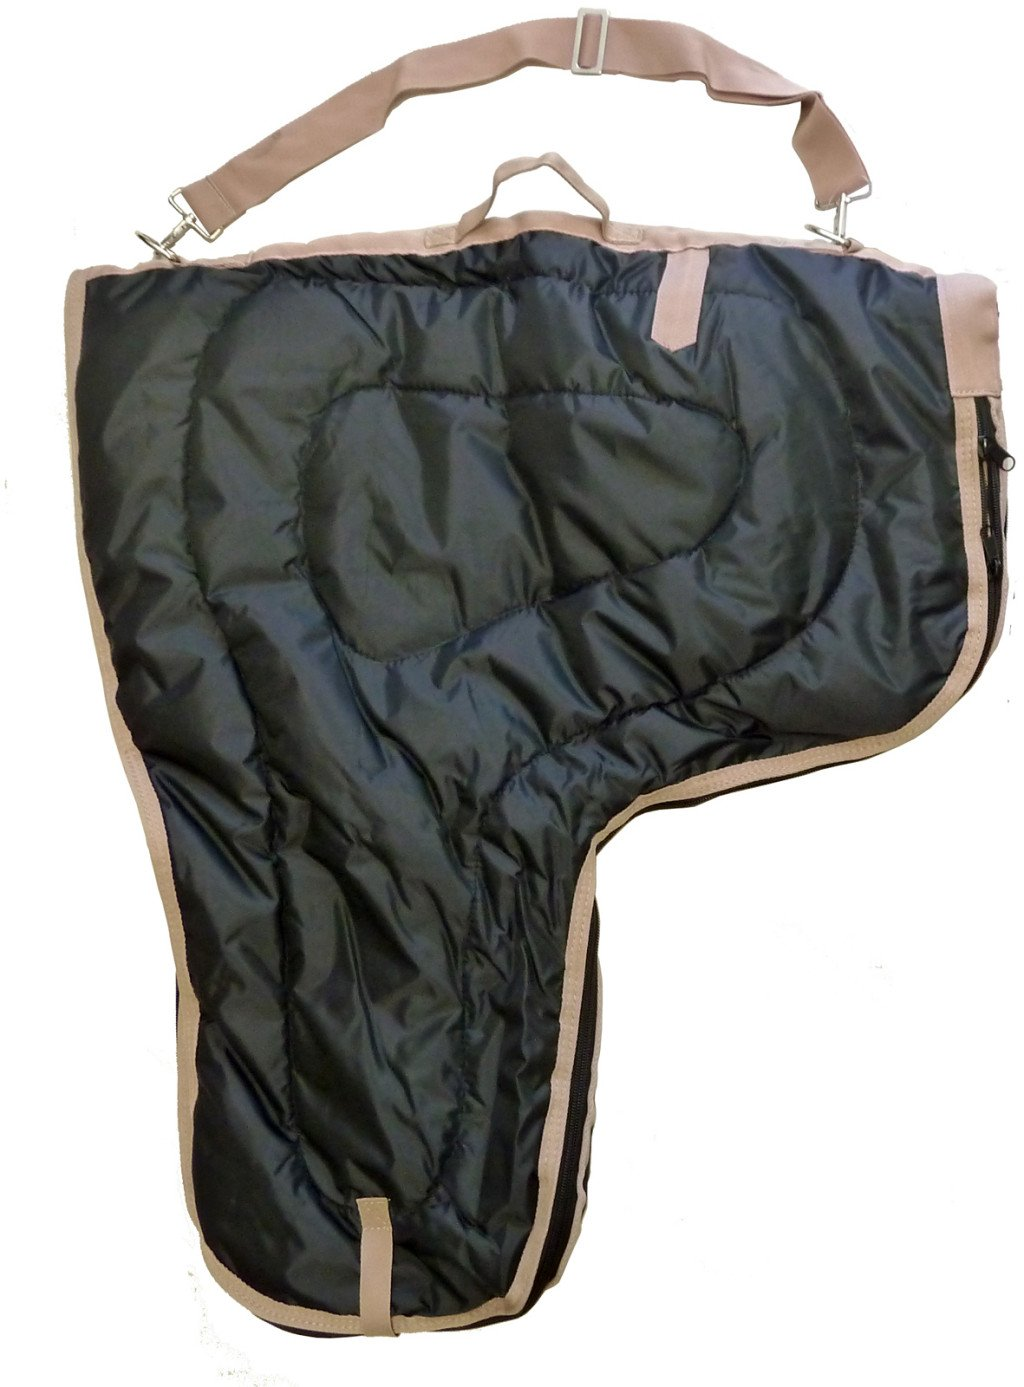 Western Horse Saddle Carrier Cover Large Bag Fully Lined and Padded